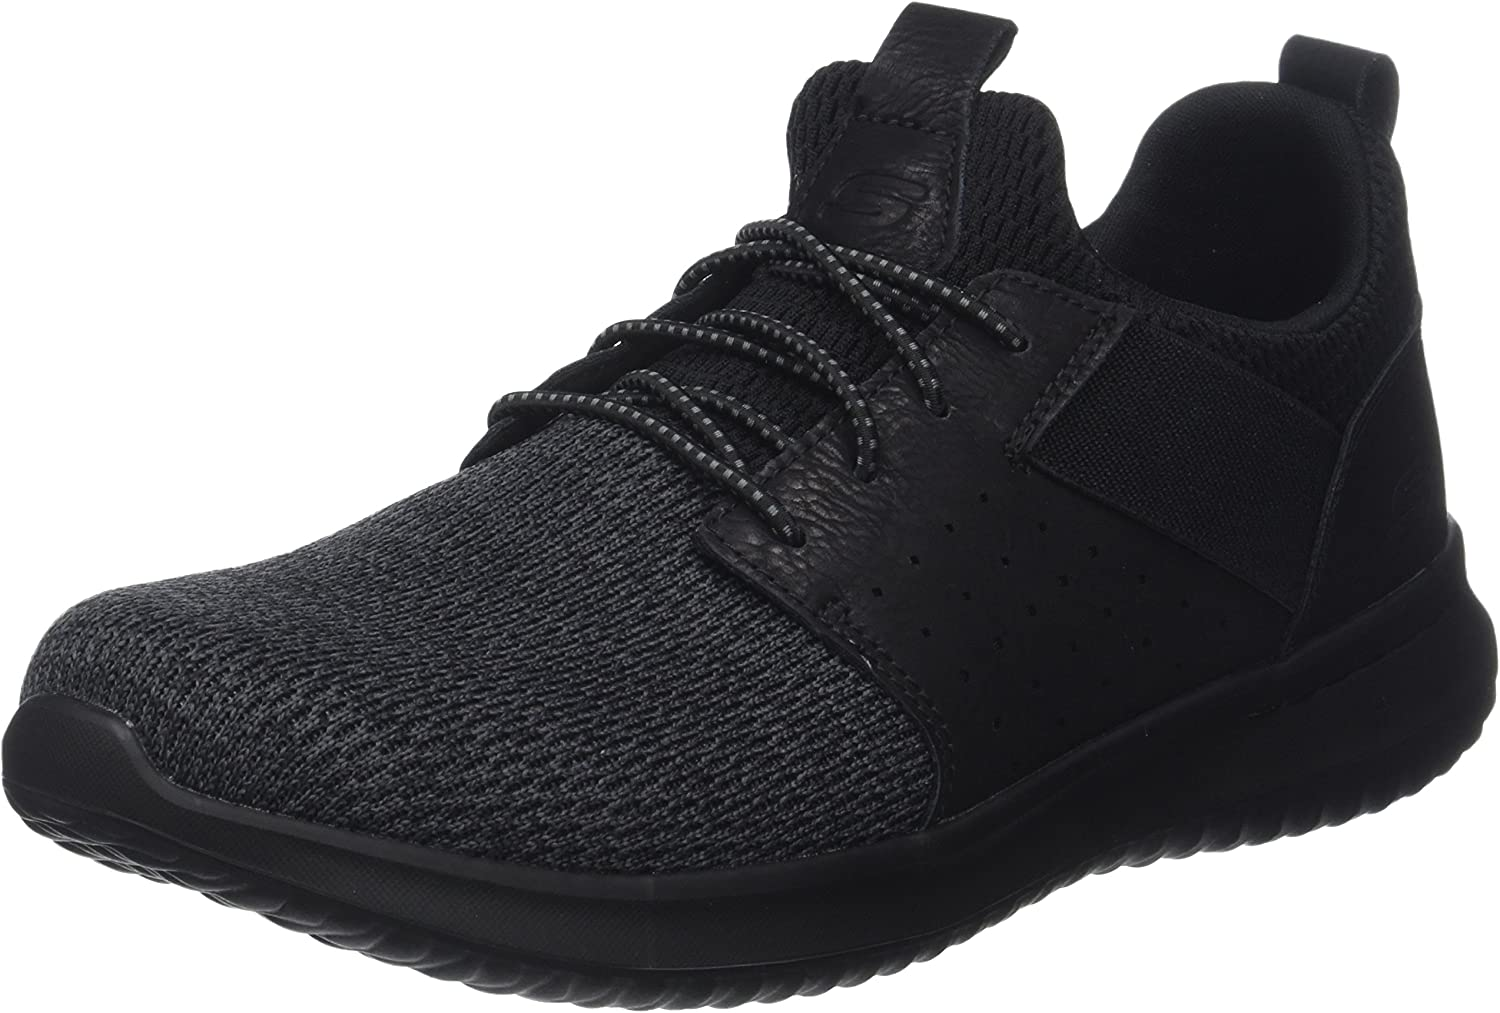 General Descodificar Sui  Amazon.com | Skechers Classic Fit Delson Camben | Fashion Sneakers